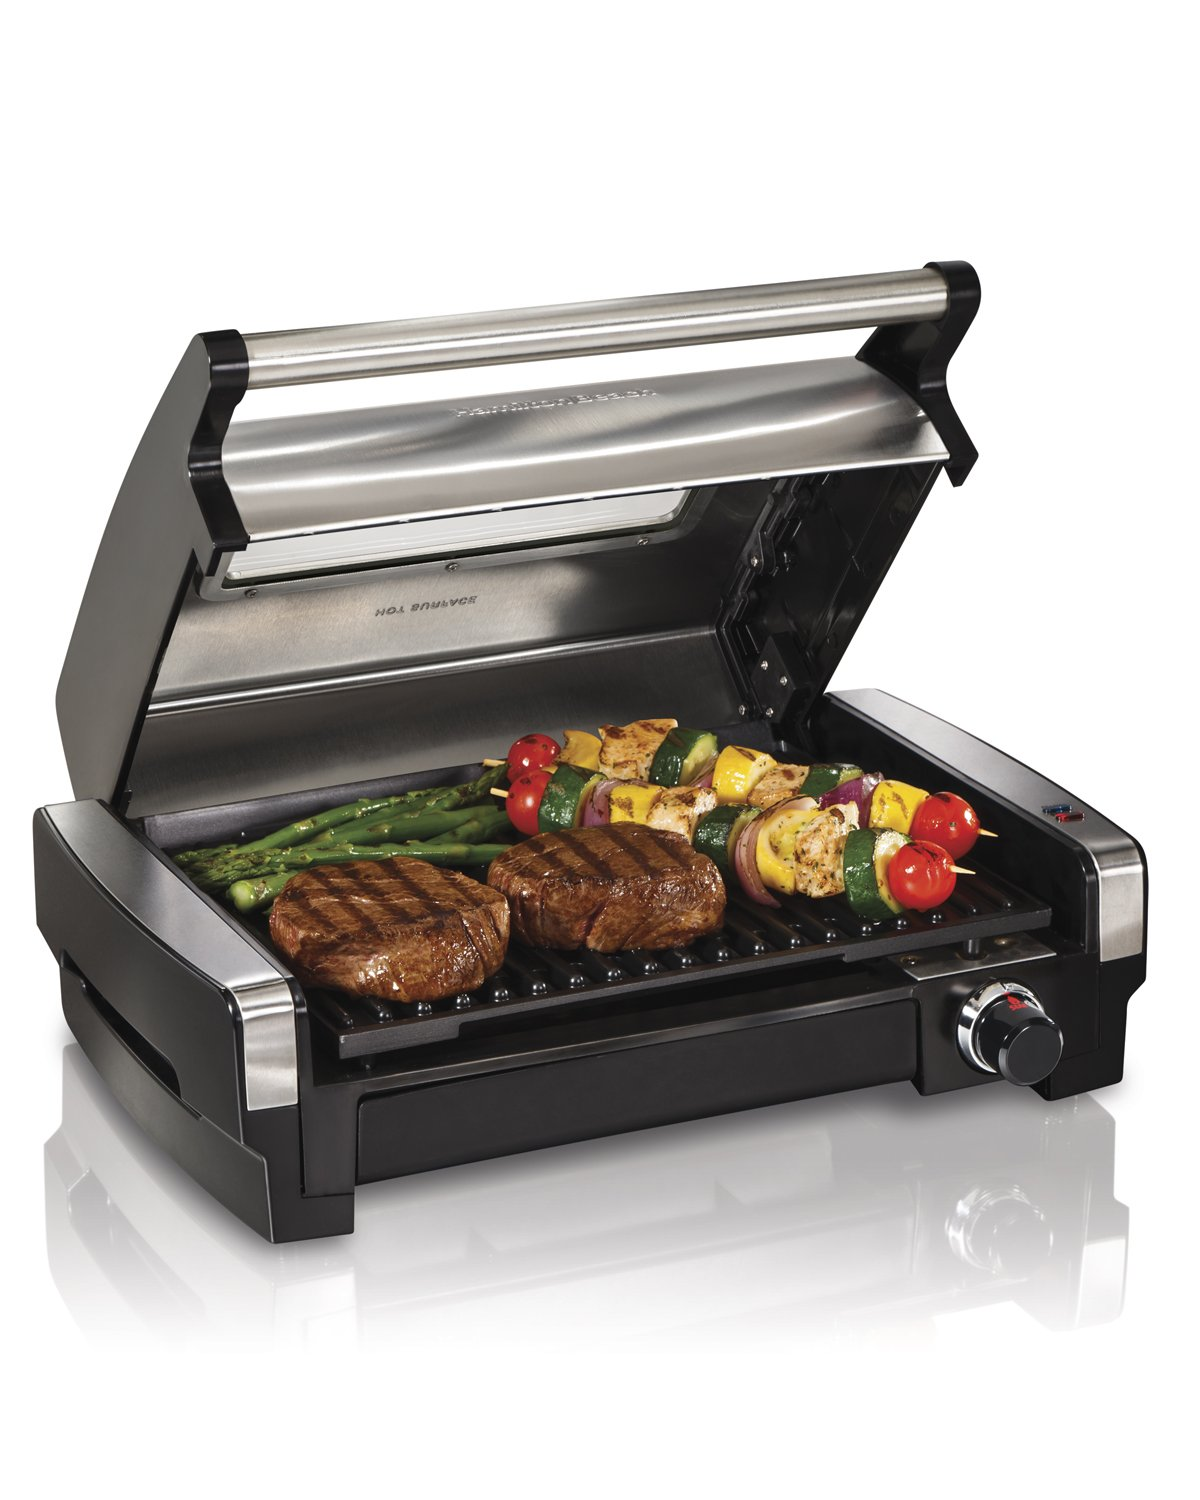 Amazon.com: Delonghi BG24 Perfecto Indoor Grill: Contact Grills ...